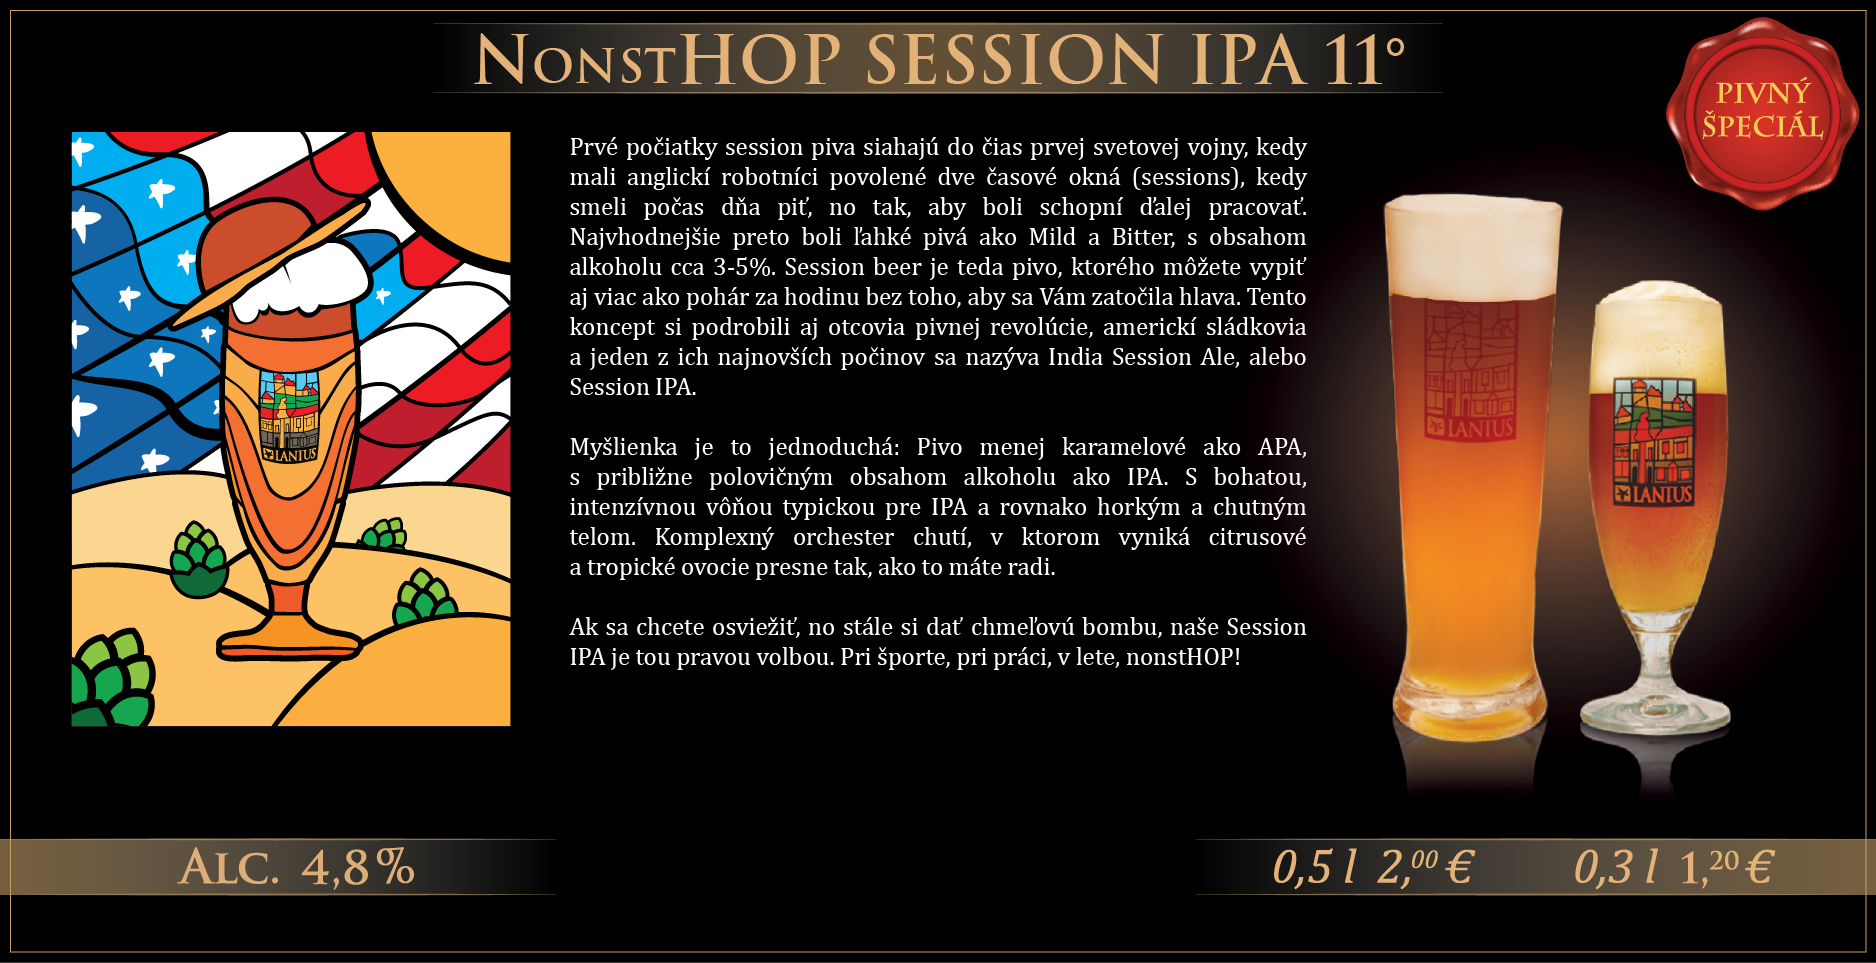 NonstHOP SESSION IPA 11 WEB_SK